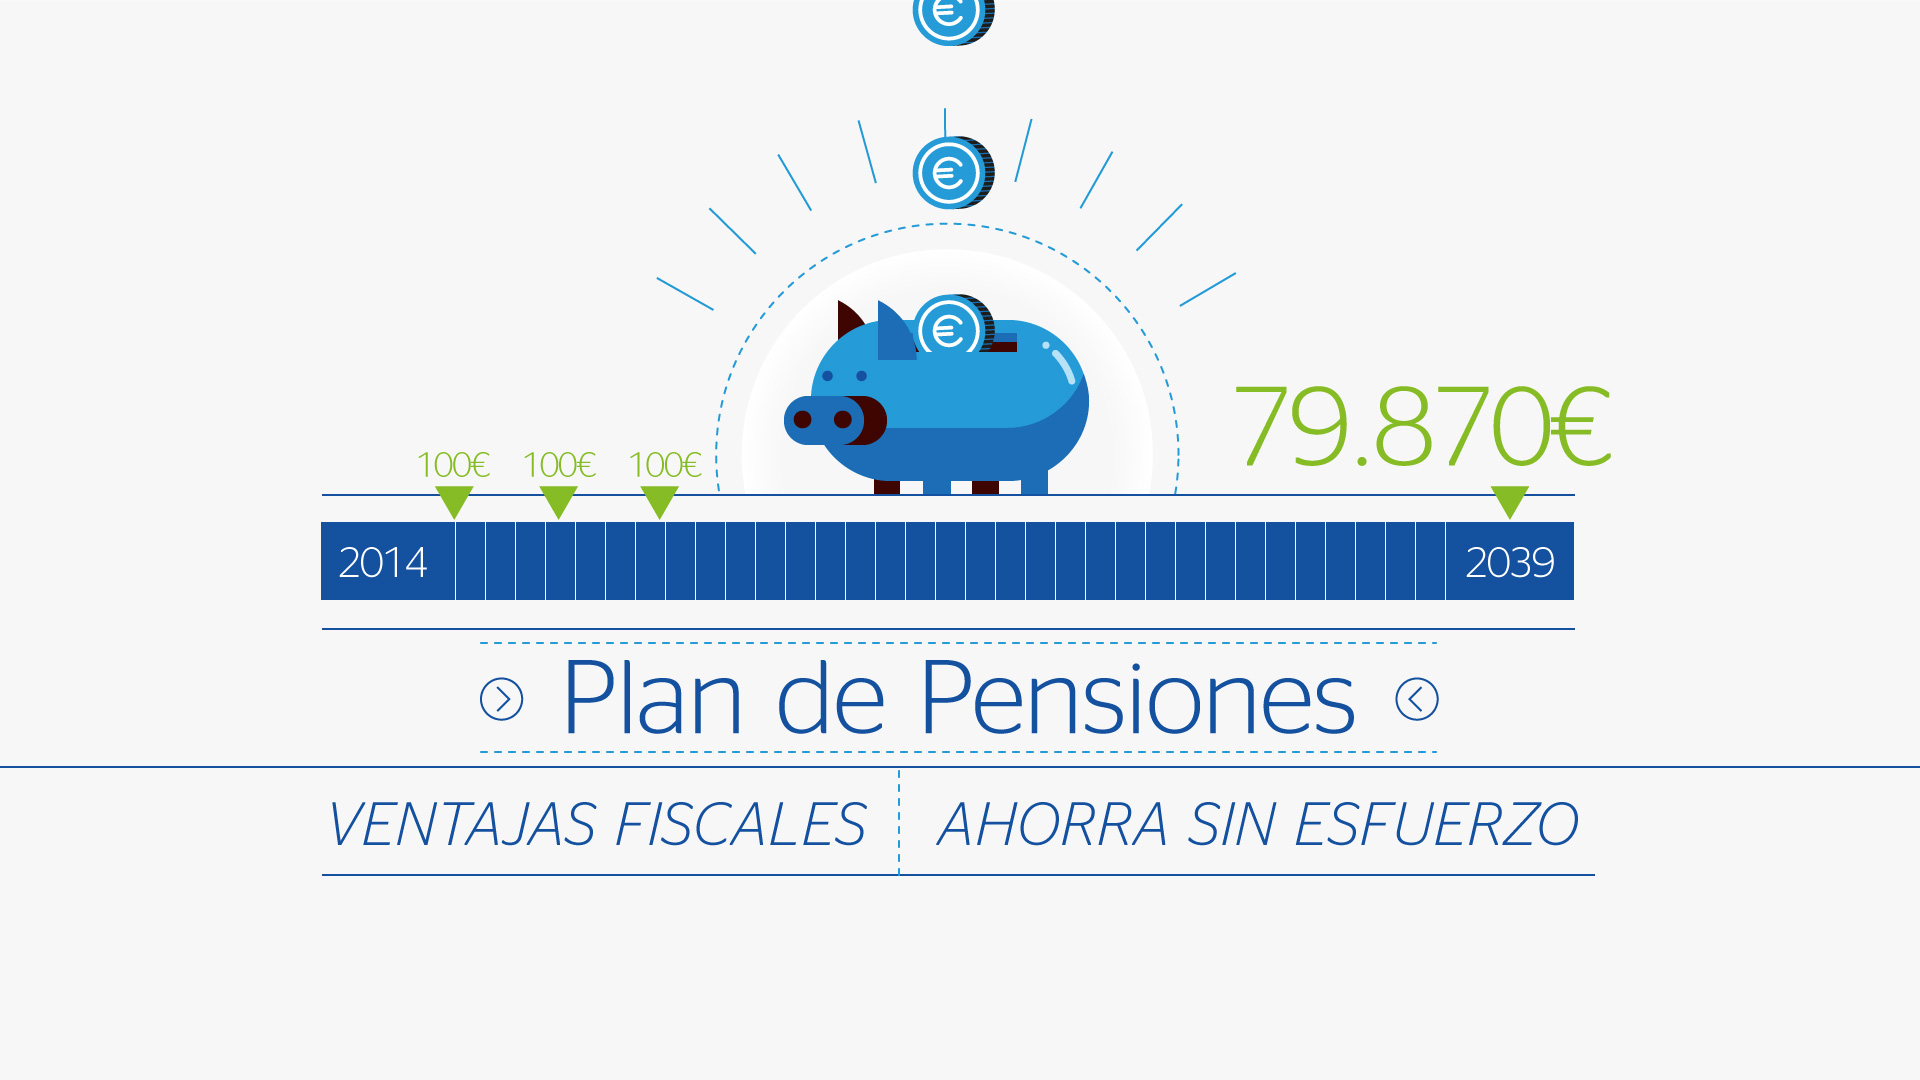 bbva pensiones infografia motion graphics animacion productora estudio madrid